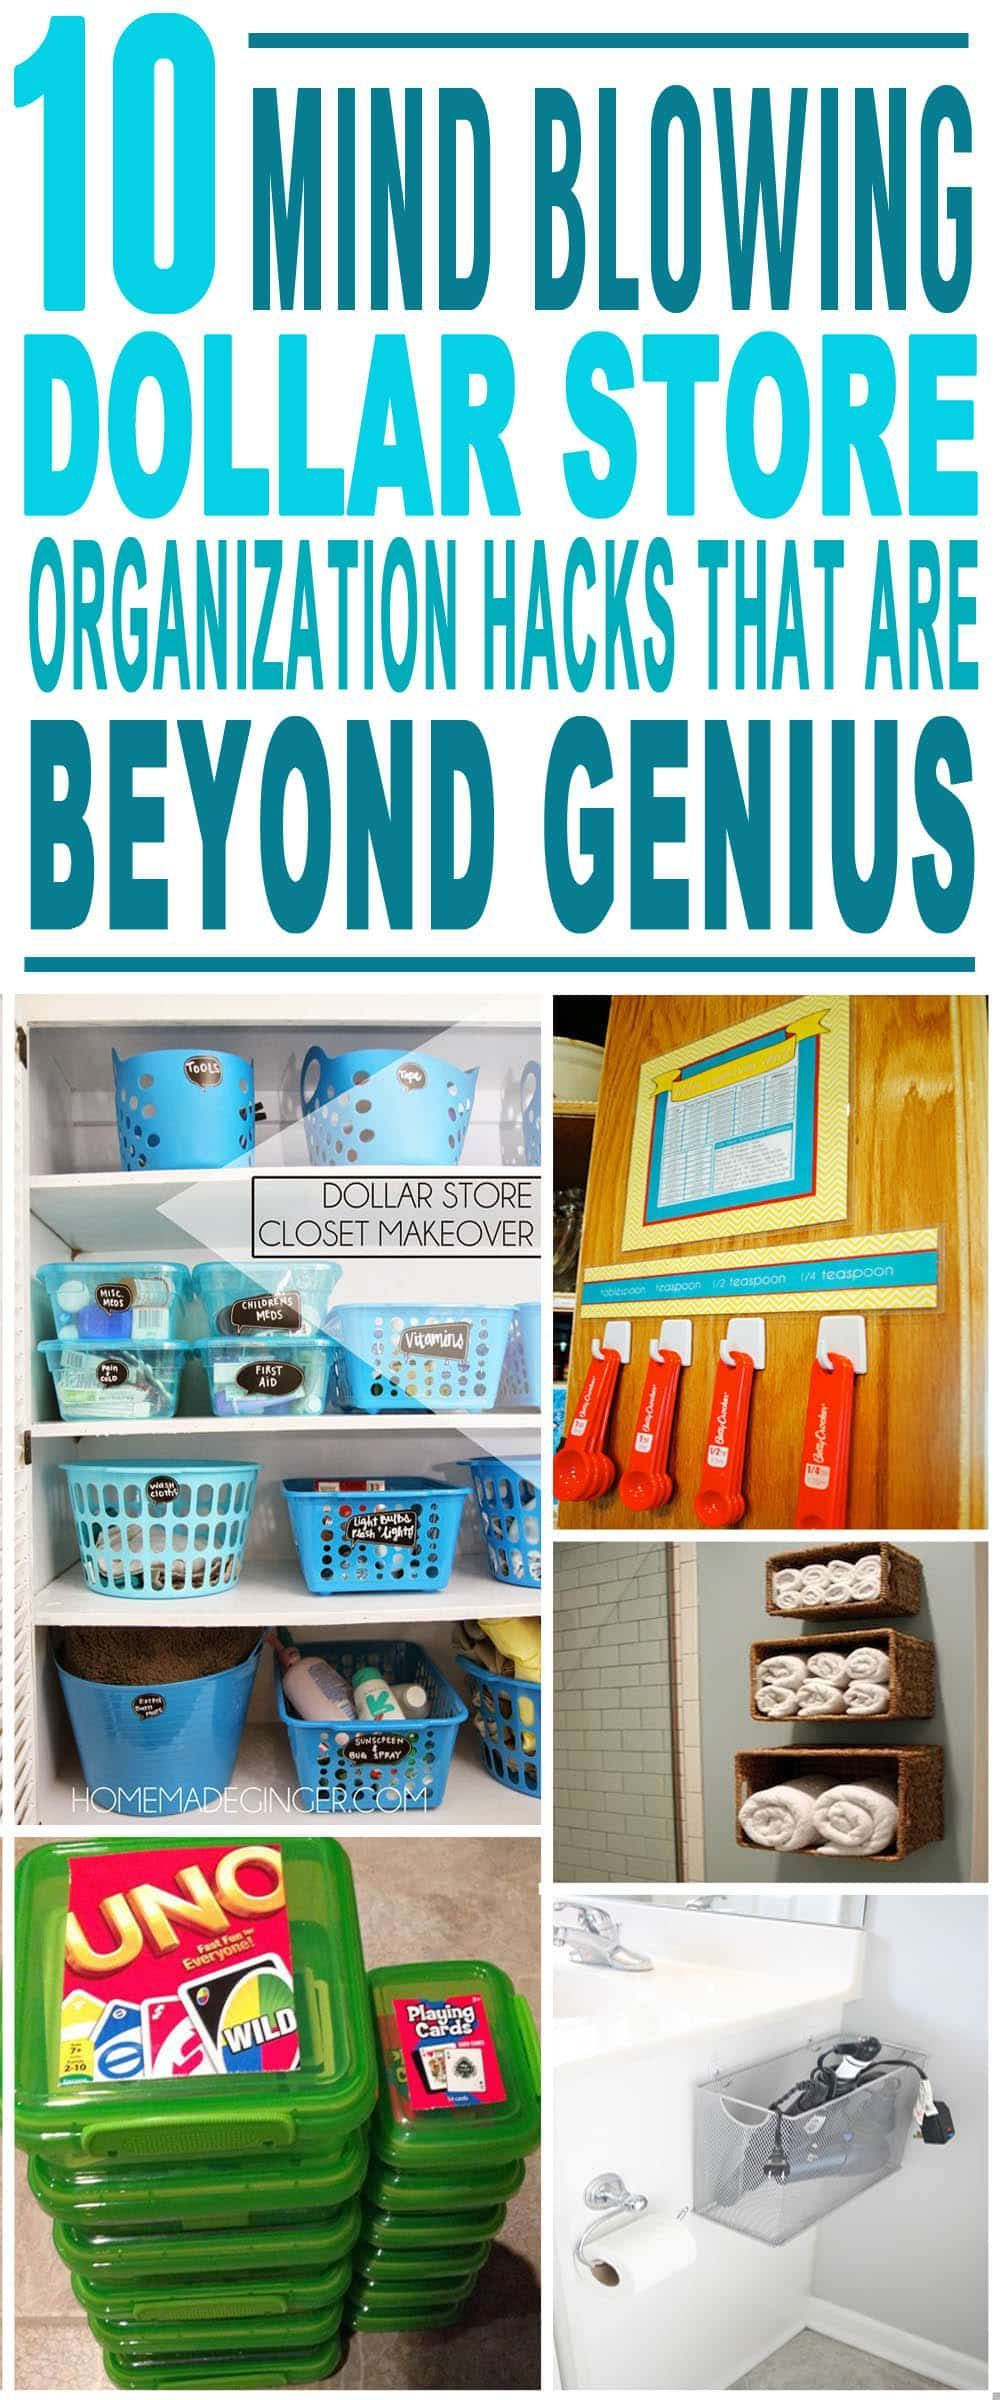 These Are The Most Amazing Dollar Store Organizing Hacks Glad To Have Found These Great Dollar Store Diy Hacks Pinning For Sure Kendin Yap